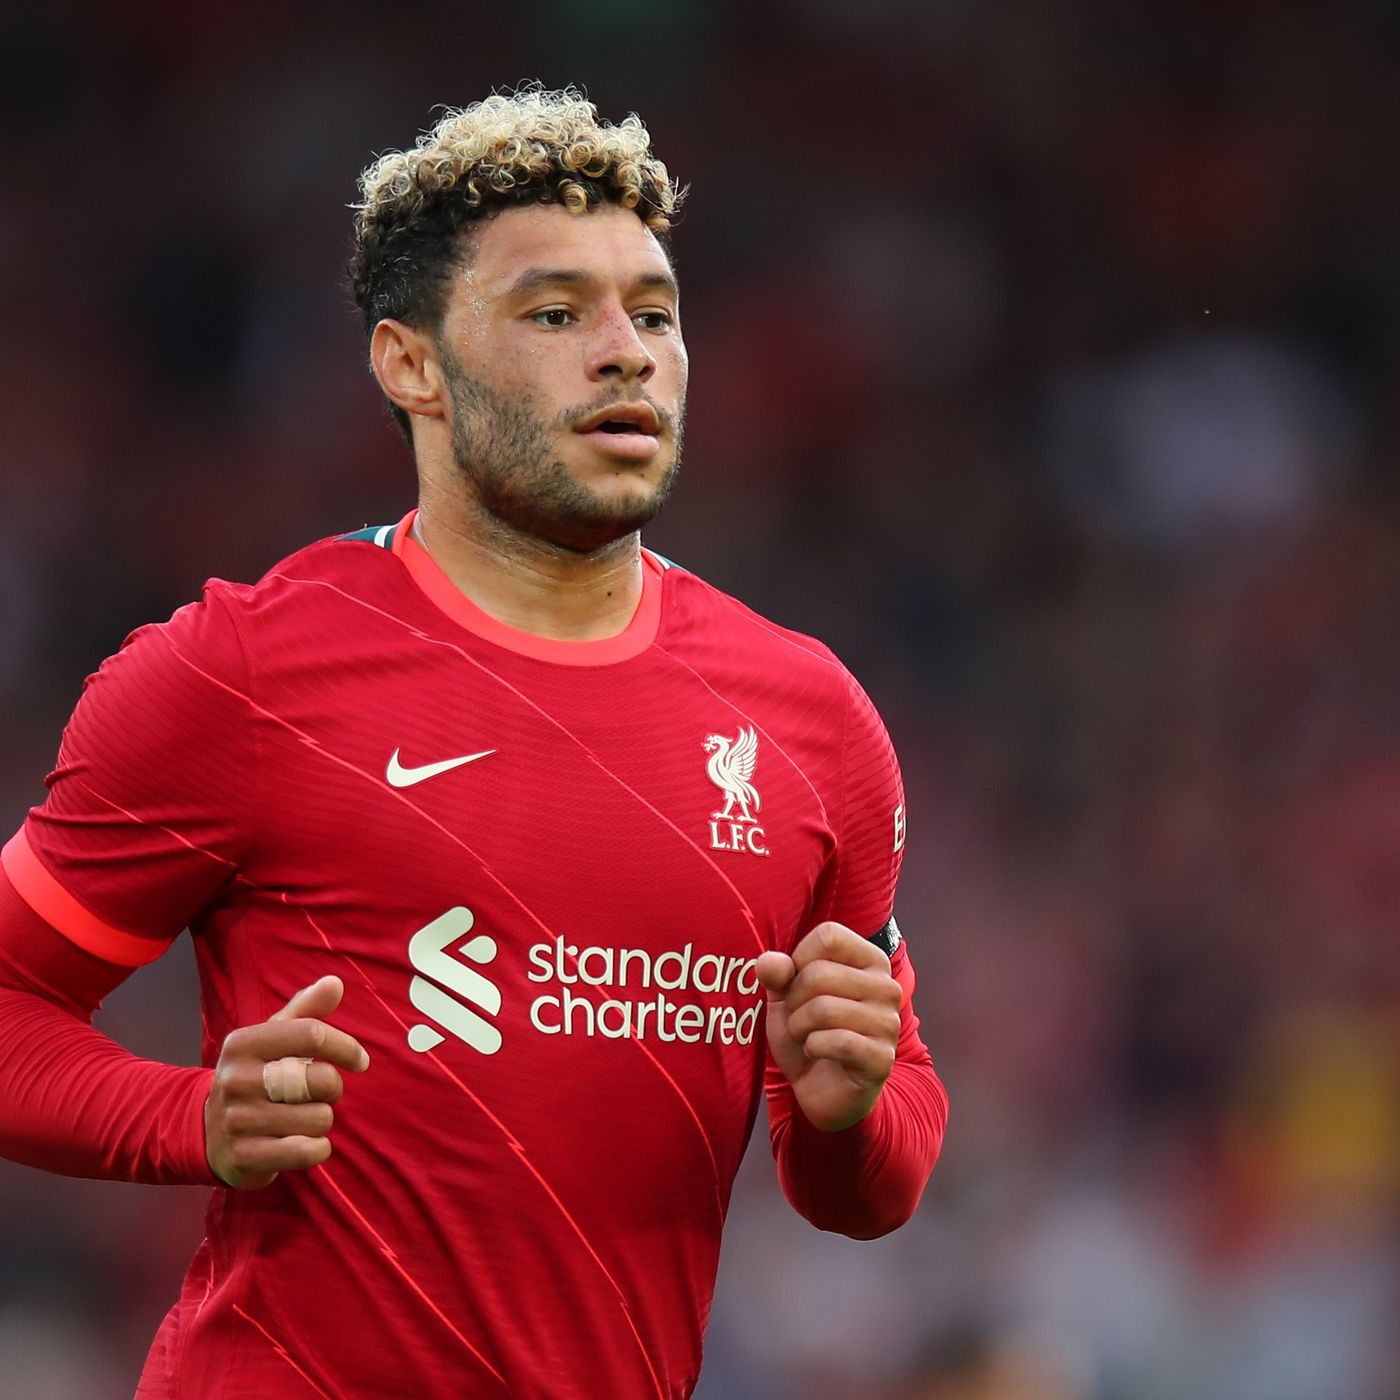 Arsenal Interested In Re-Signing Oxlade-Chamberlain